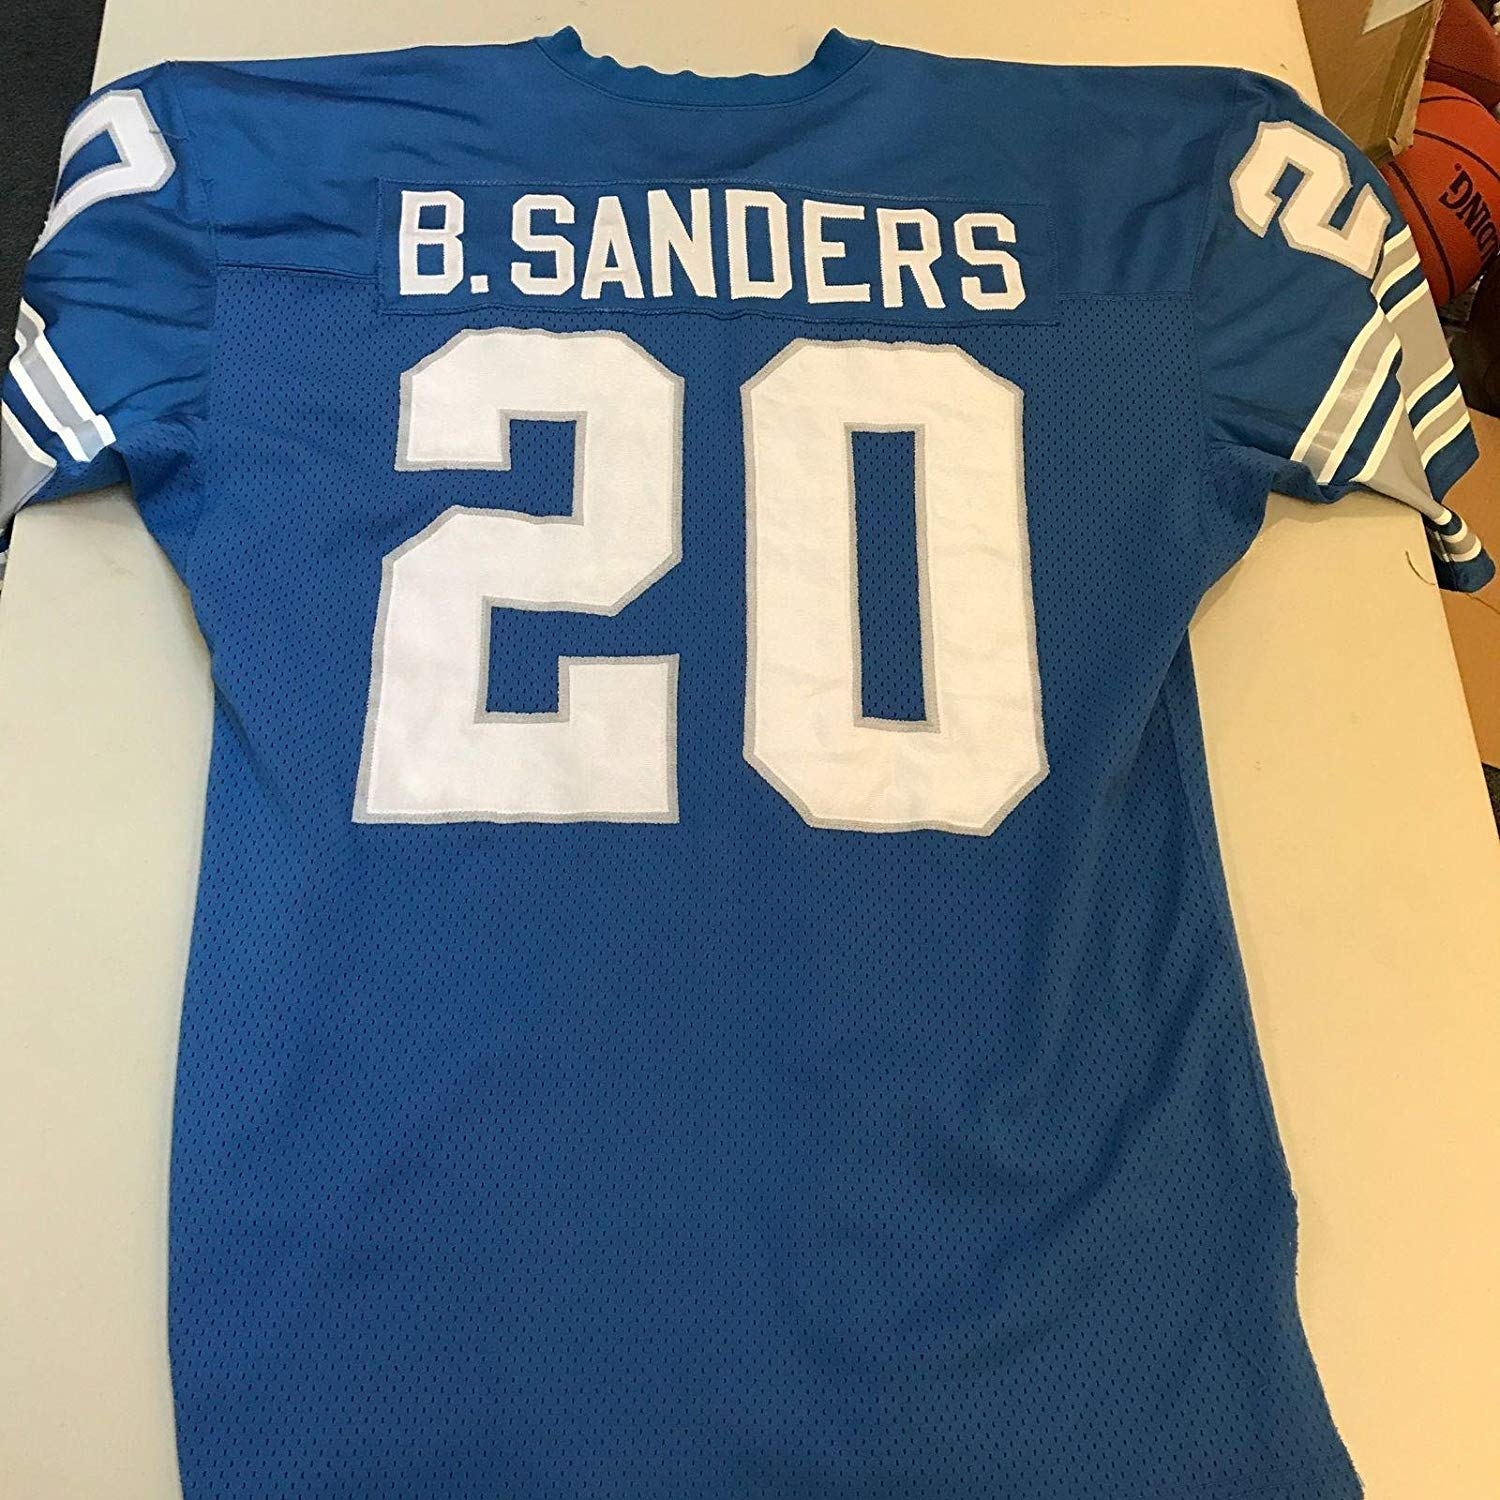 eba864fca90 Get Quotations · 1995 Barry Sanders Game Used Detroit Lions Home Jersey -  Unsigned NFL Game Used Jerseys